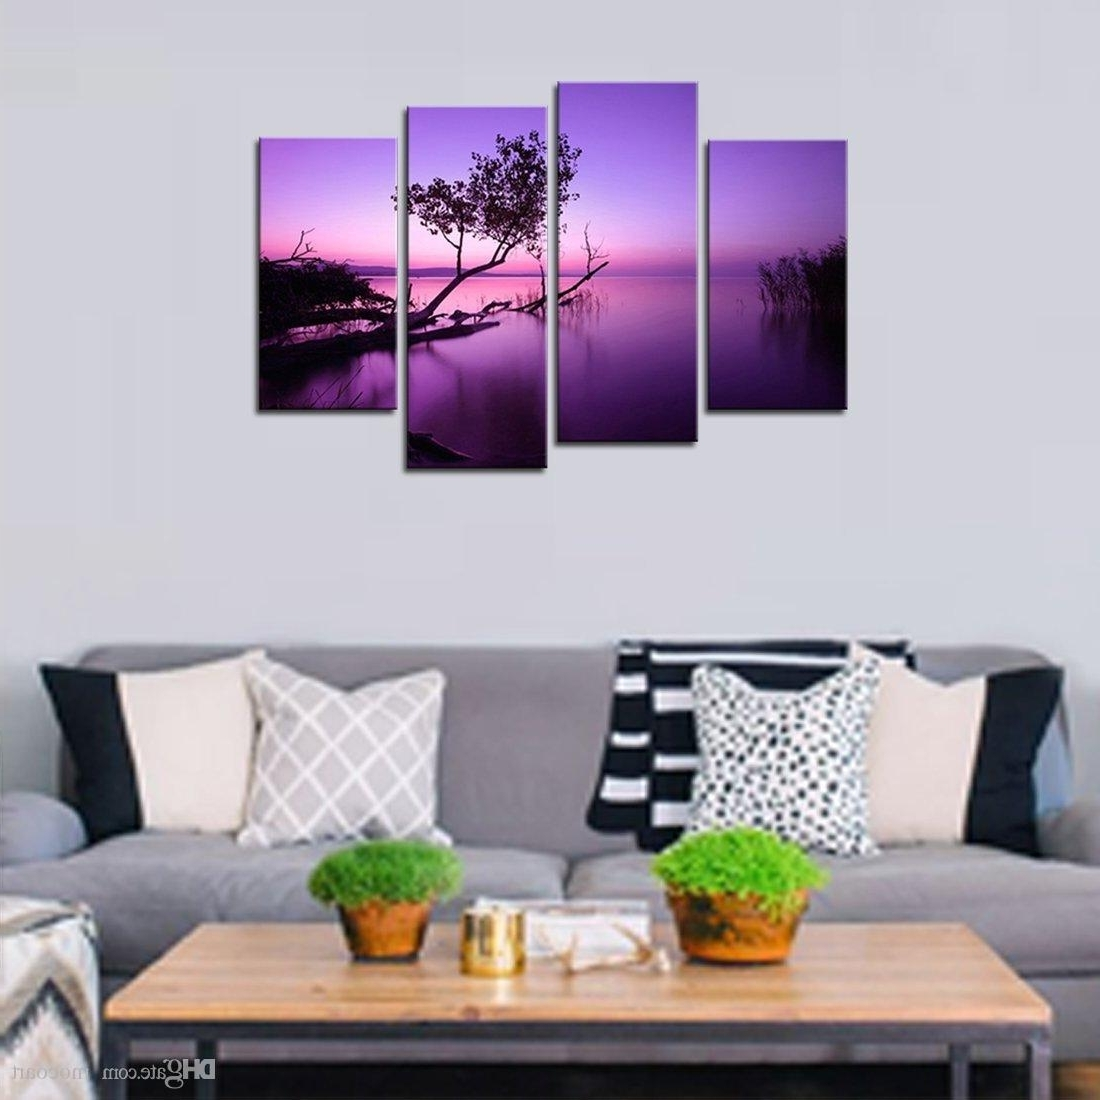 2018 2018 Canvas Wall Art Purple Lake Tree Painting Picture Landscape Intended For Canvas Wall Art In Purple (View 15 of 15)